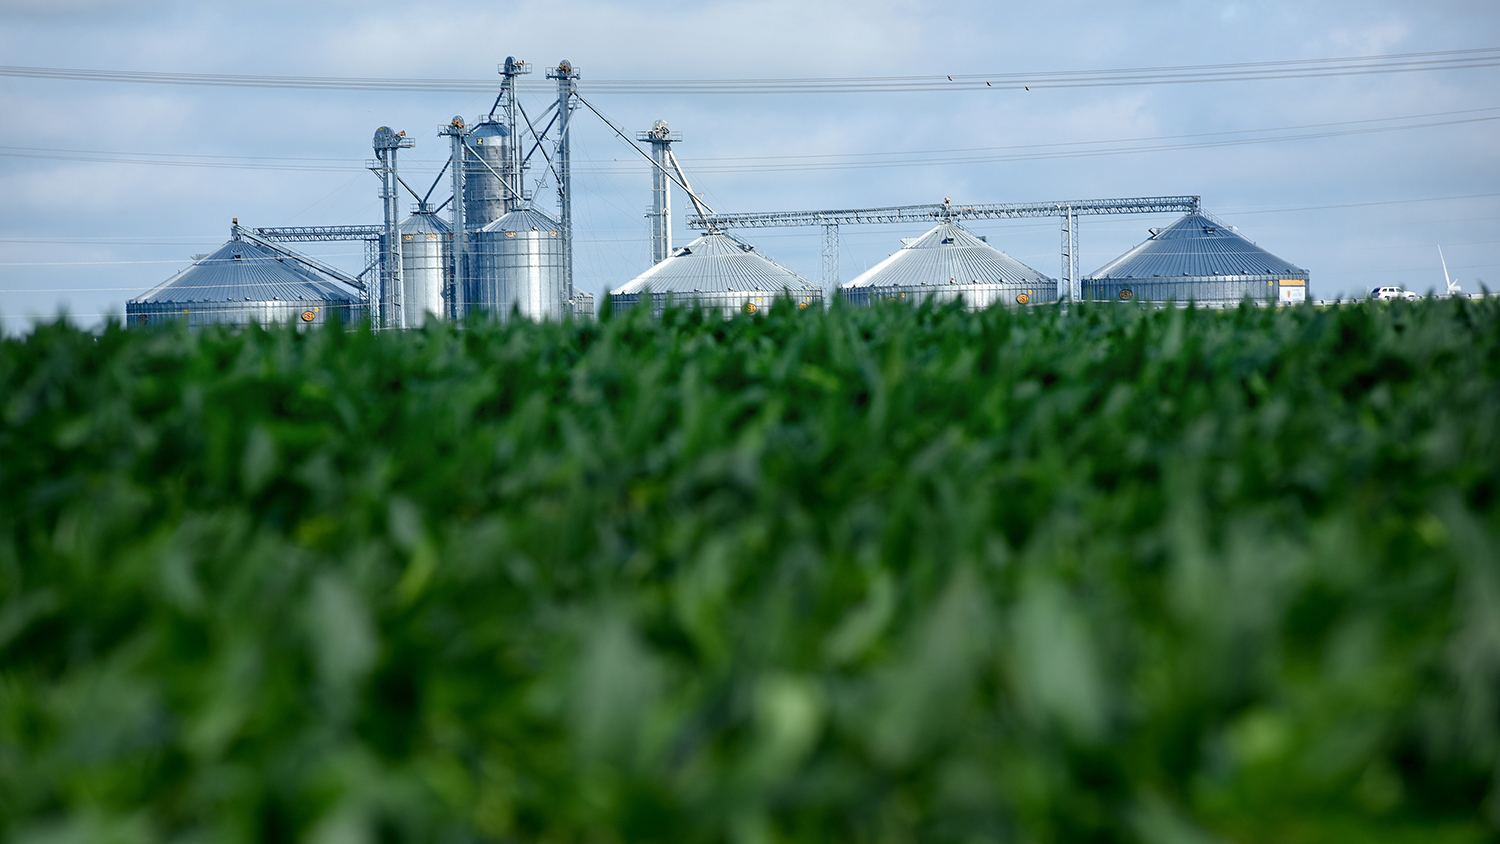 Grain silos rise up behind soybean fields on a farm in Pasquotank County.